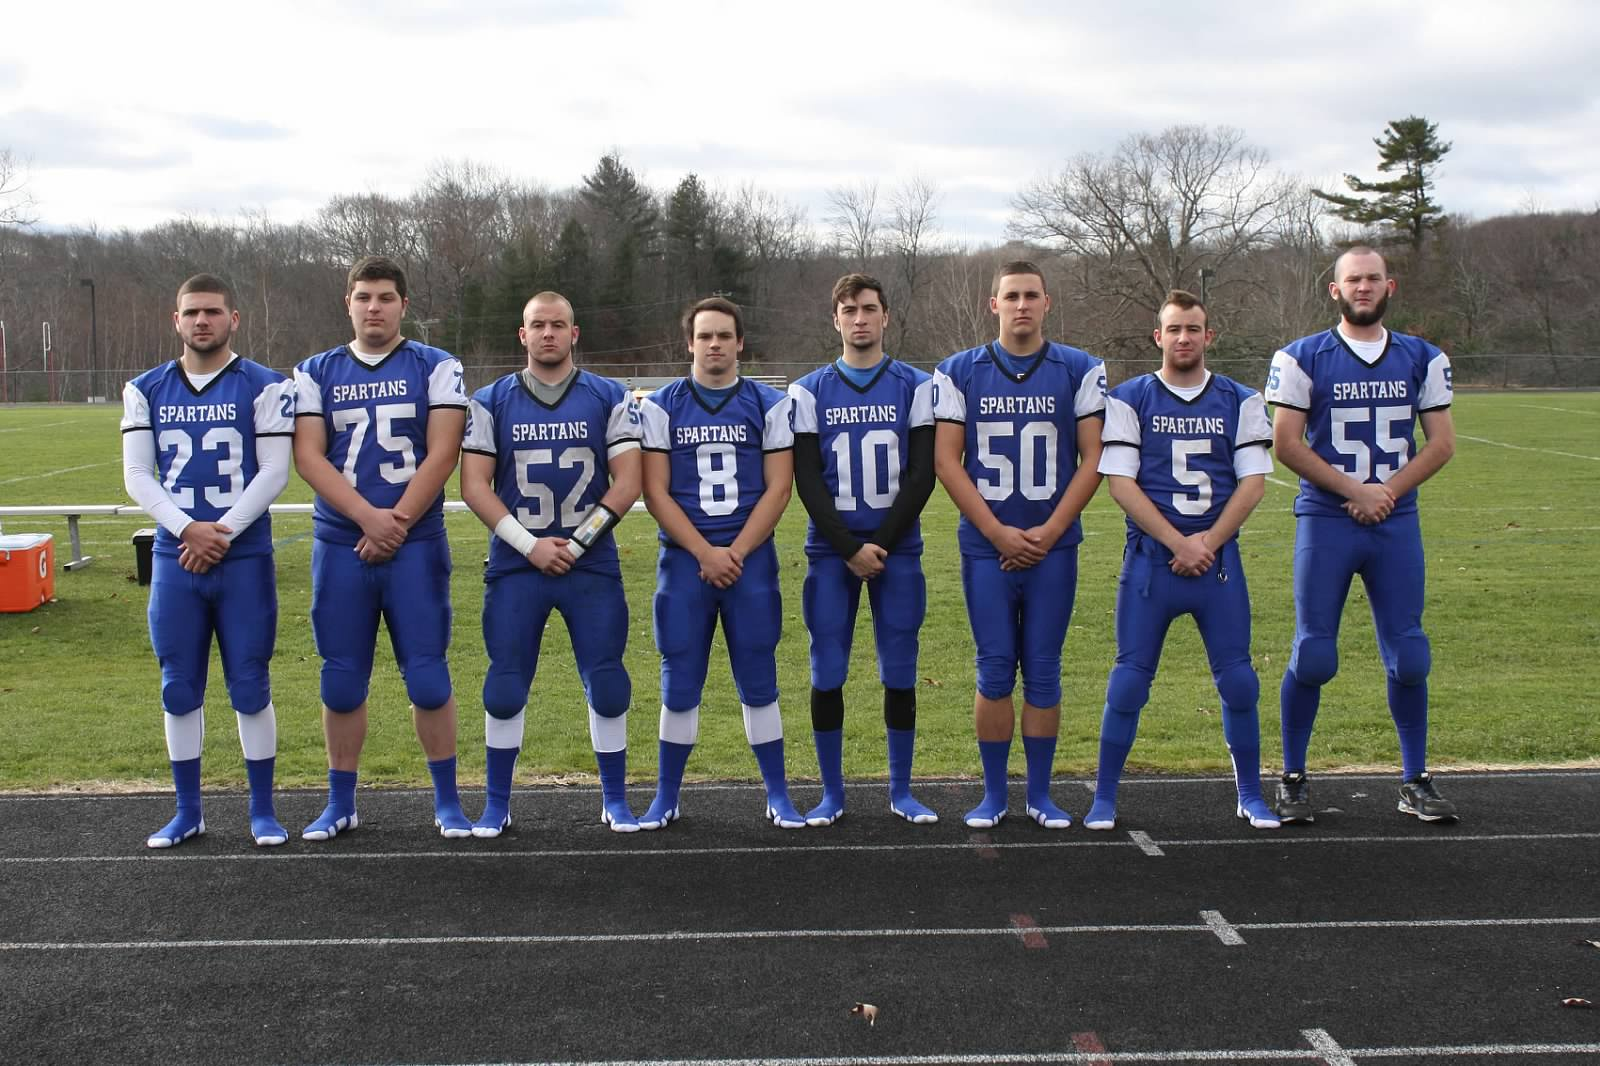 The seniors of Mills' varsity football team include Tyler Mello, Garrett LaPointe, Connor Kennedy, Lucas Lanning, Matt Rinkus, Adam Positano, Collin Kennedy and Sean Burke.